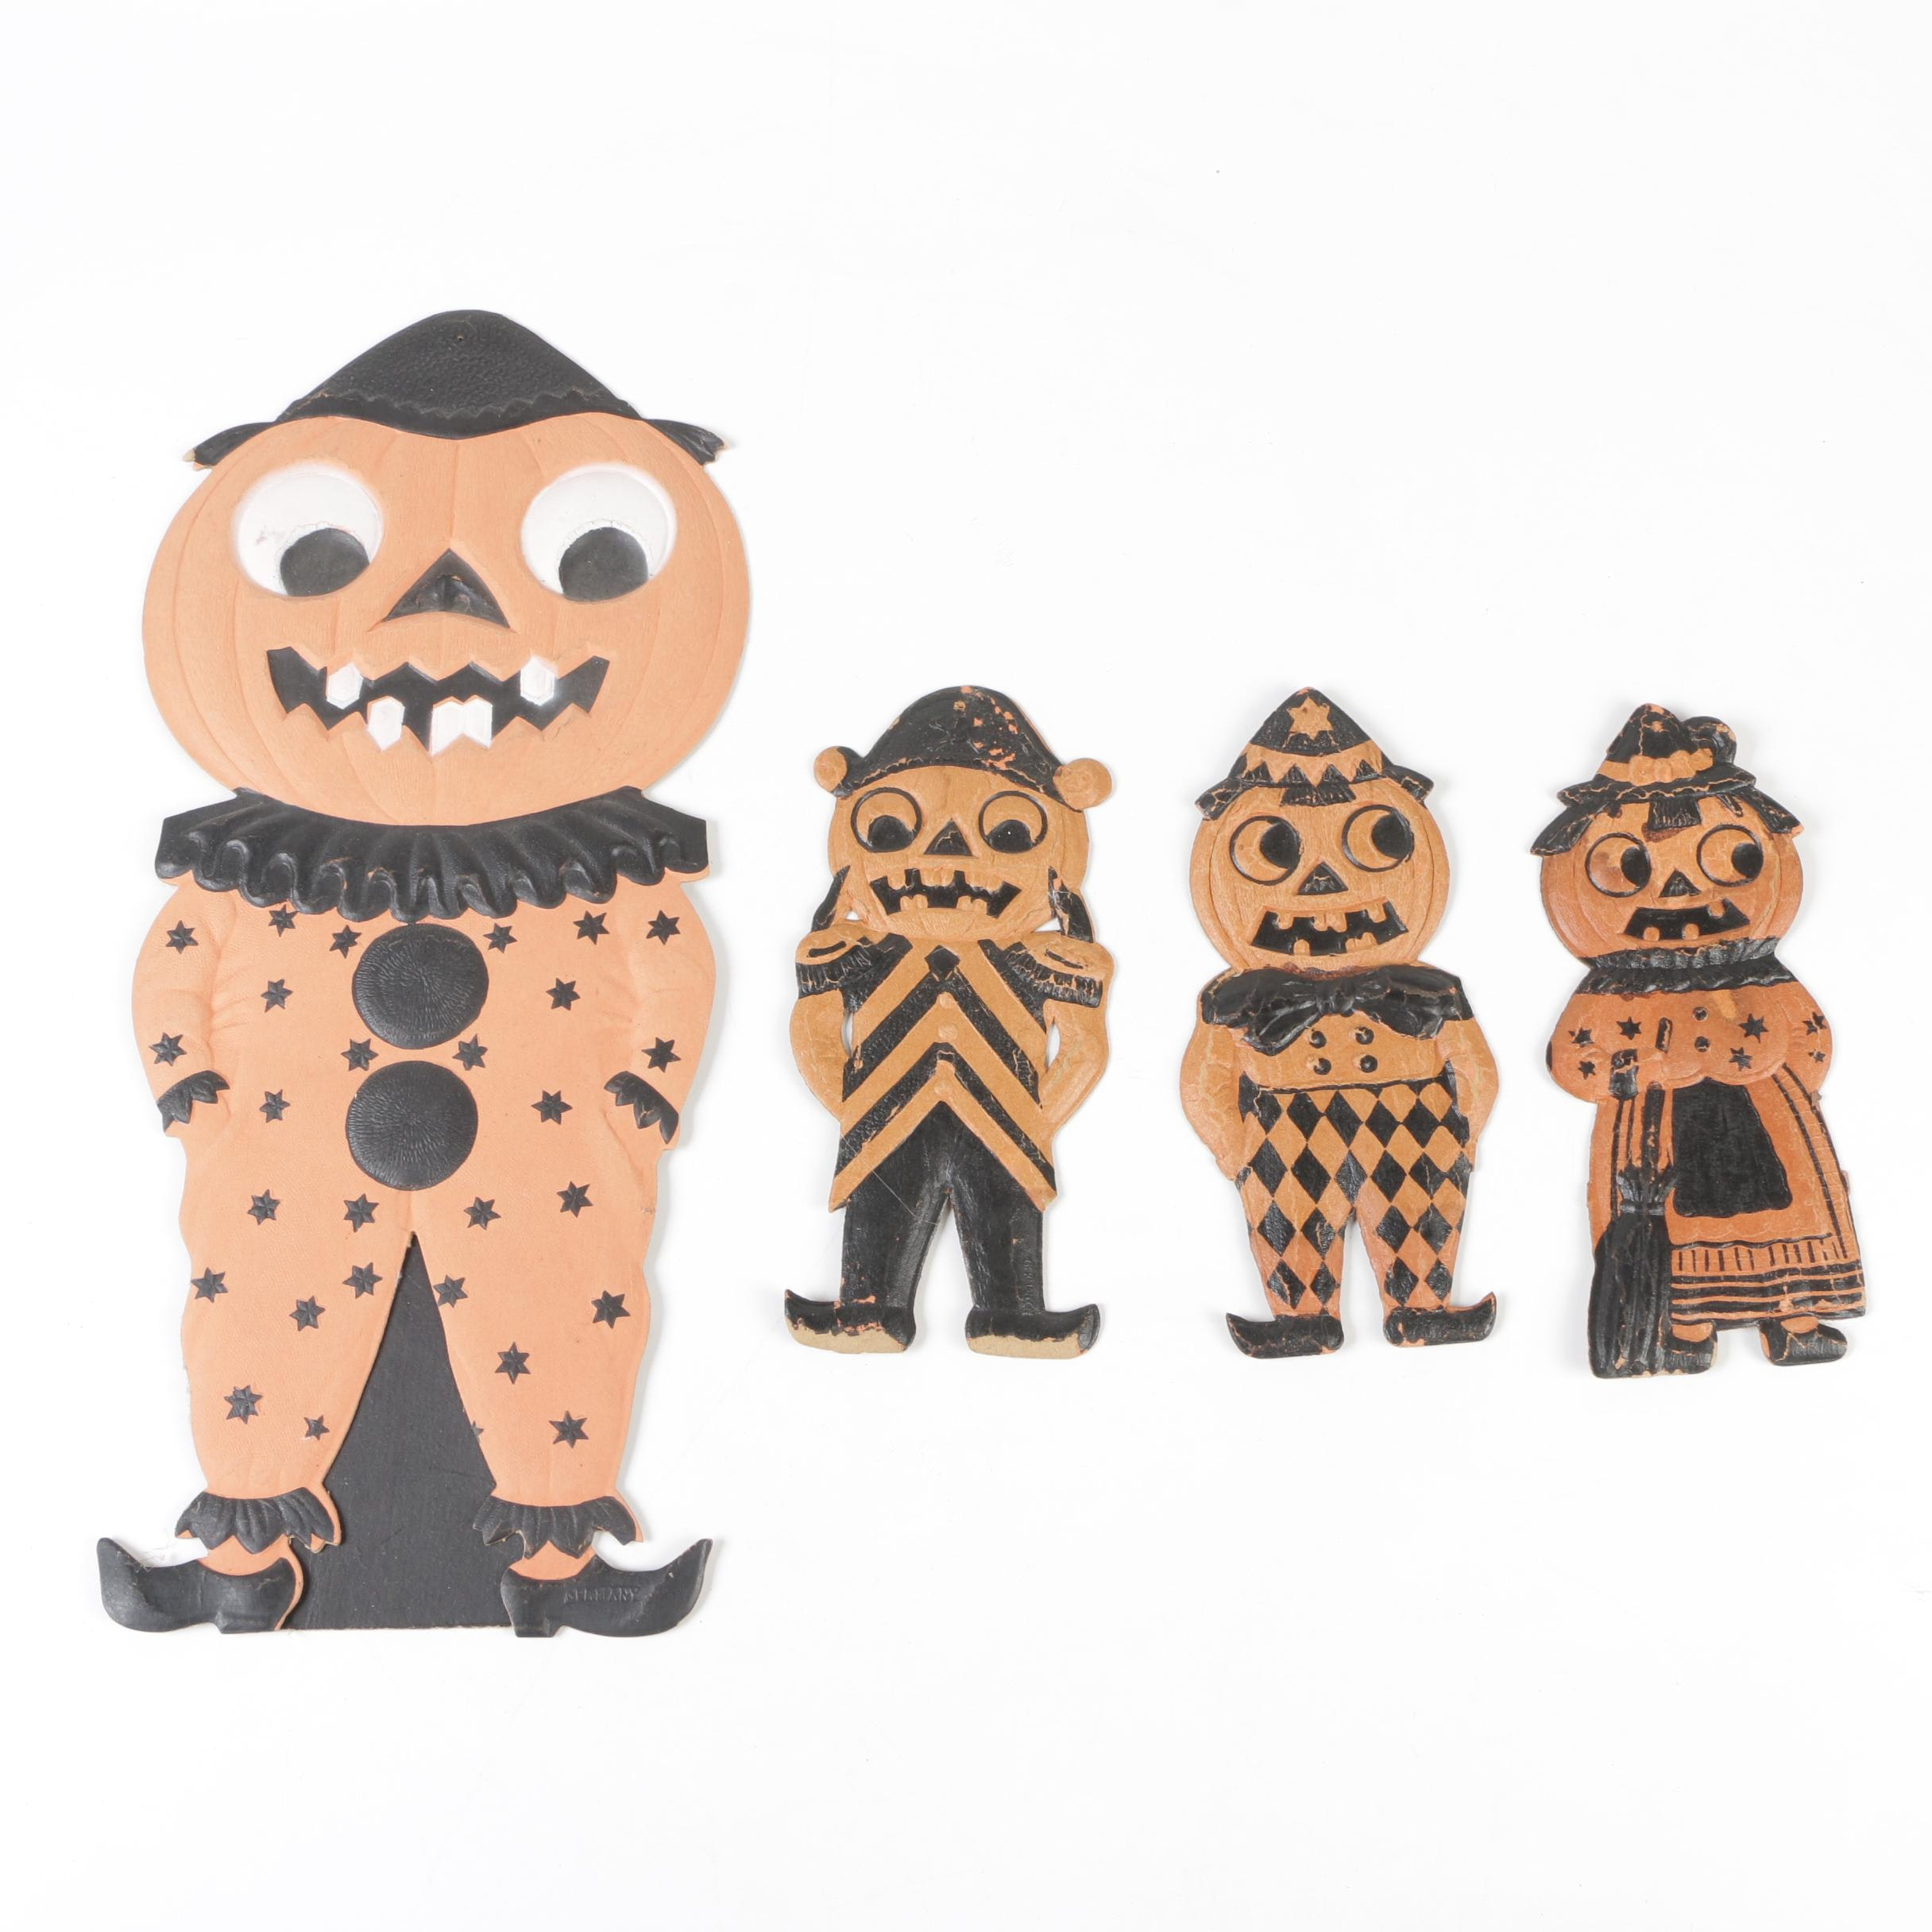 German Pressed Cardboard Halloween Decorations, Early 20th Century